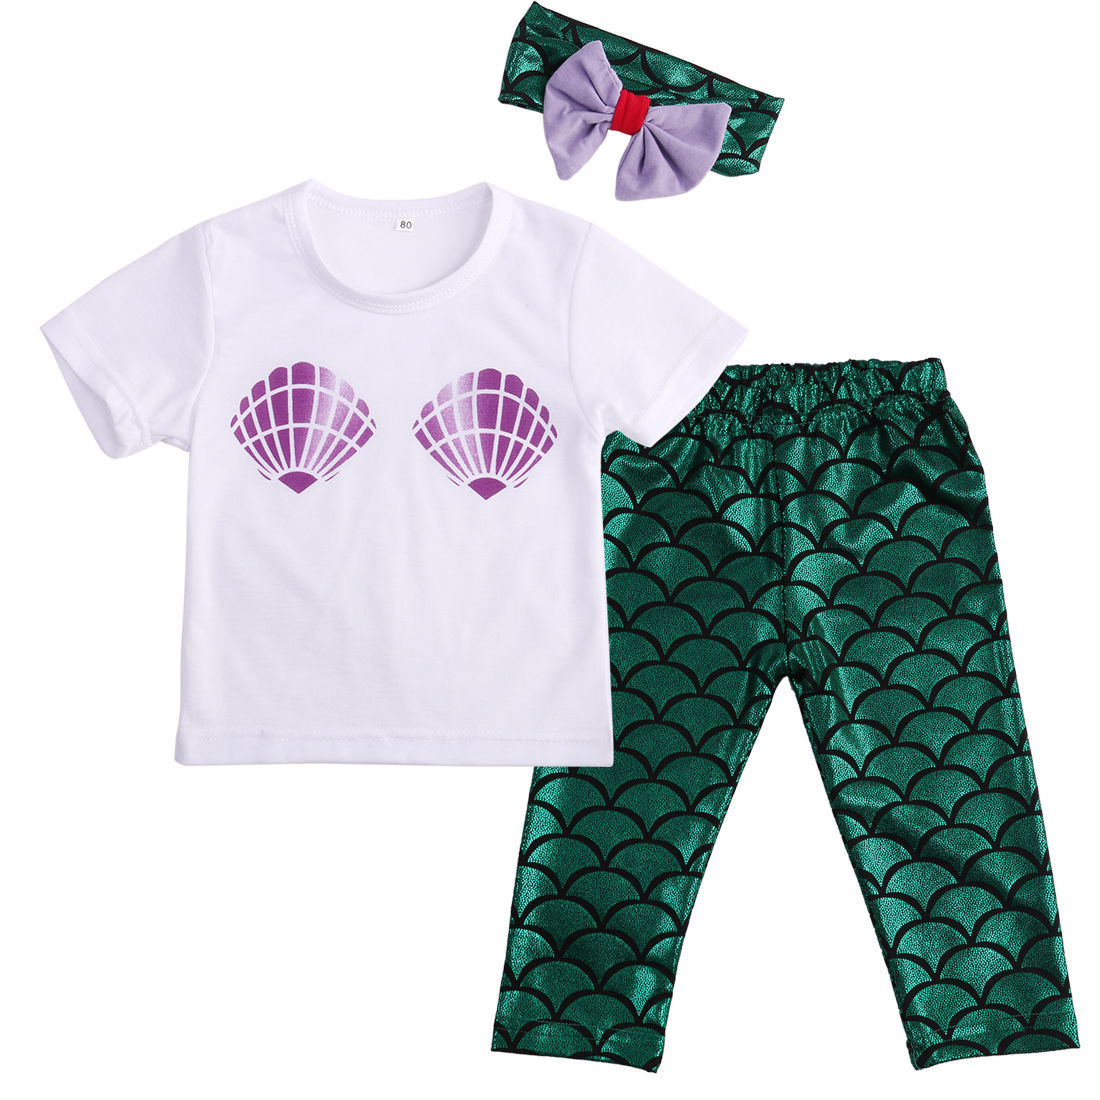 2018 Latest Children's Wear Kids Infant Toddler Baby Girl Clothes Shell Tops T shirt Mermaid Pants Leggings Headband 3PCS Outfit подвесная люстра freya bertrand fr5906 pl 05 ch